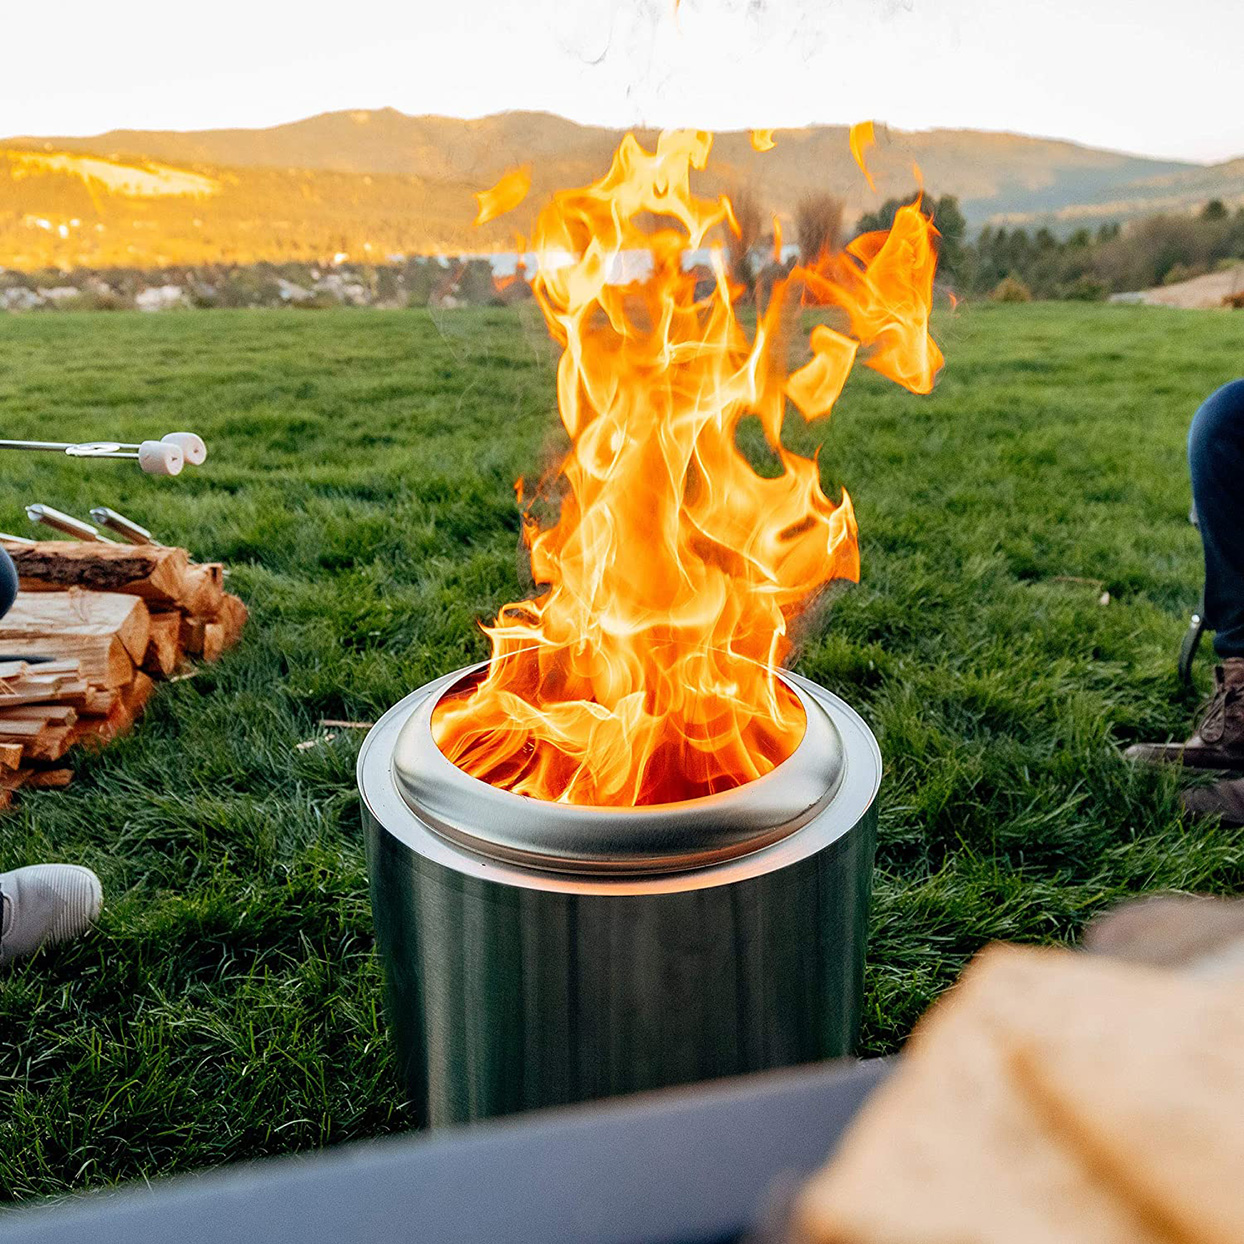 stainless-steel smokeless firepit on grass